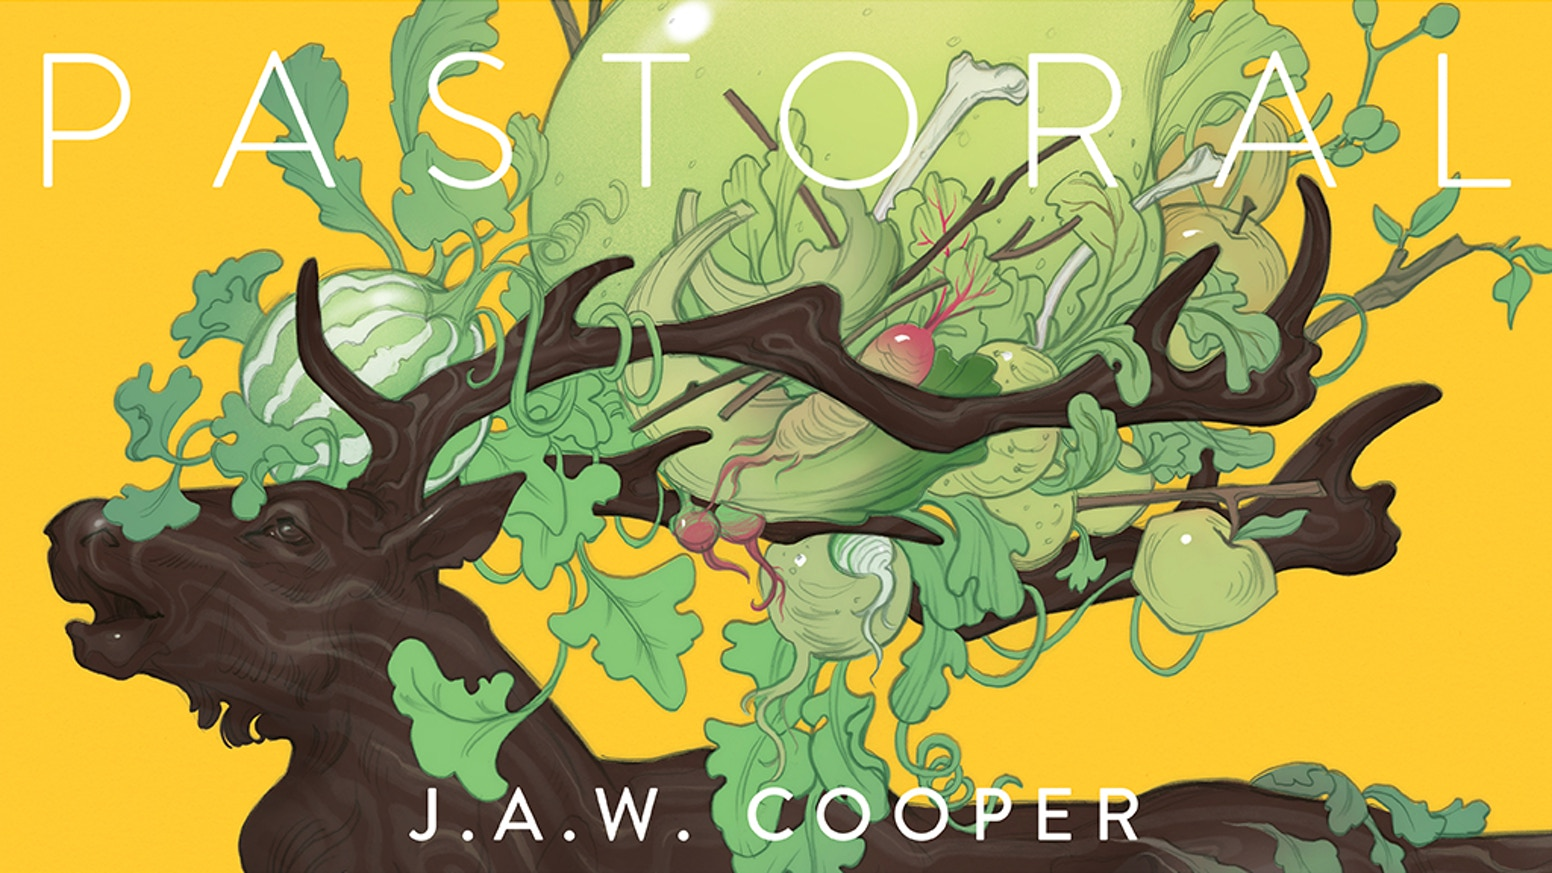 Pastoral by J.A.W. Cooper